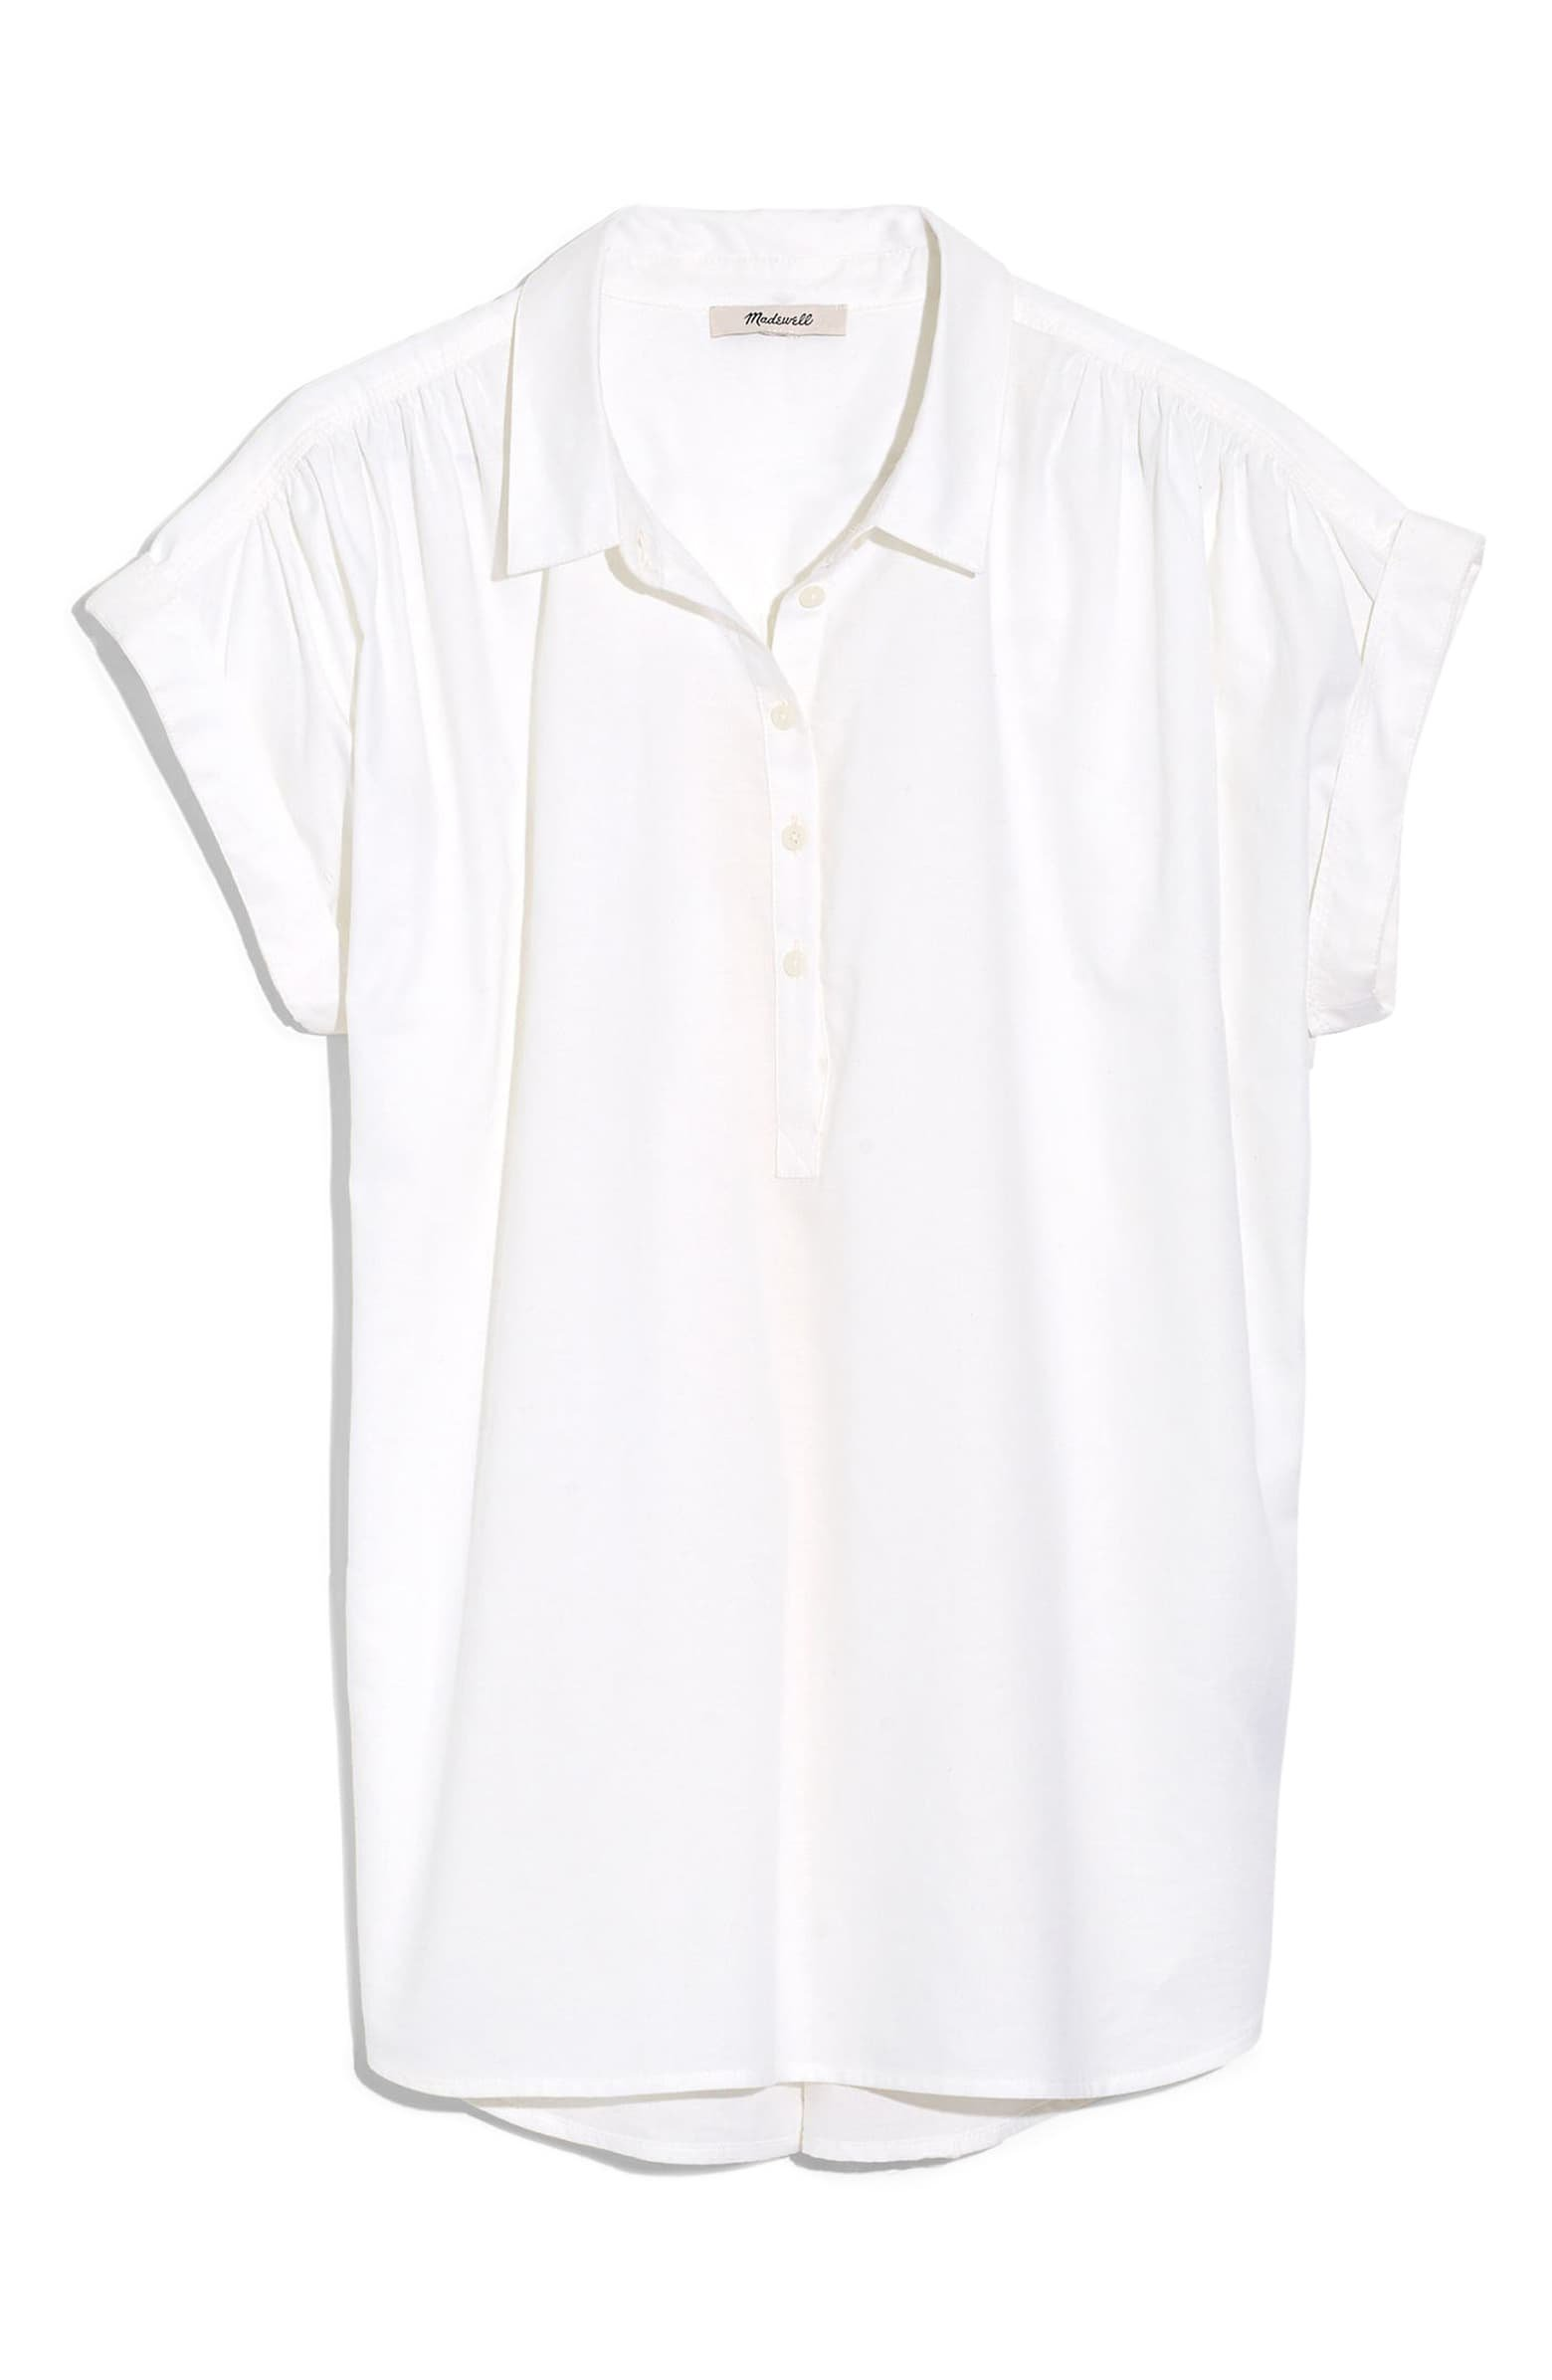 Madewell Eyelet White Central Popover Shirt white